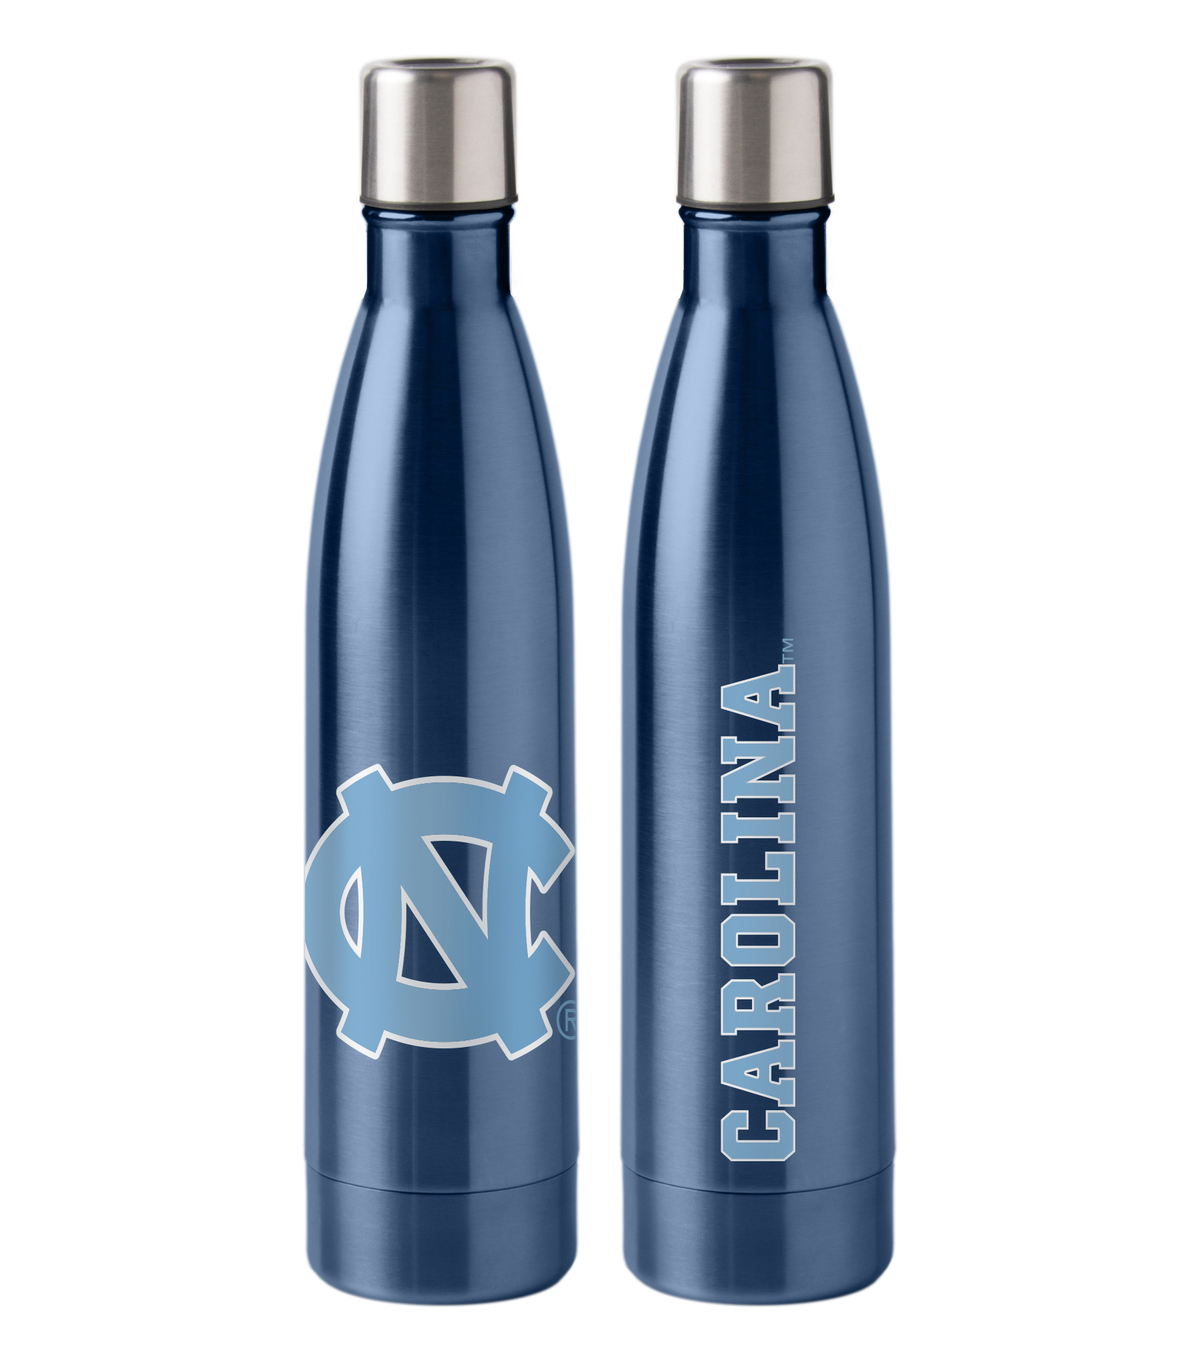 University of North Carolina 18 oz Insulated Stainless Steel Bottle